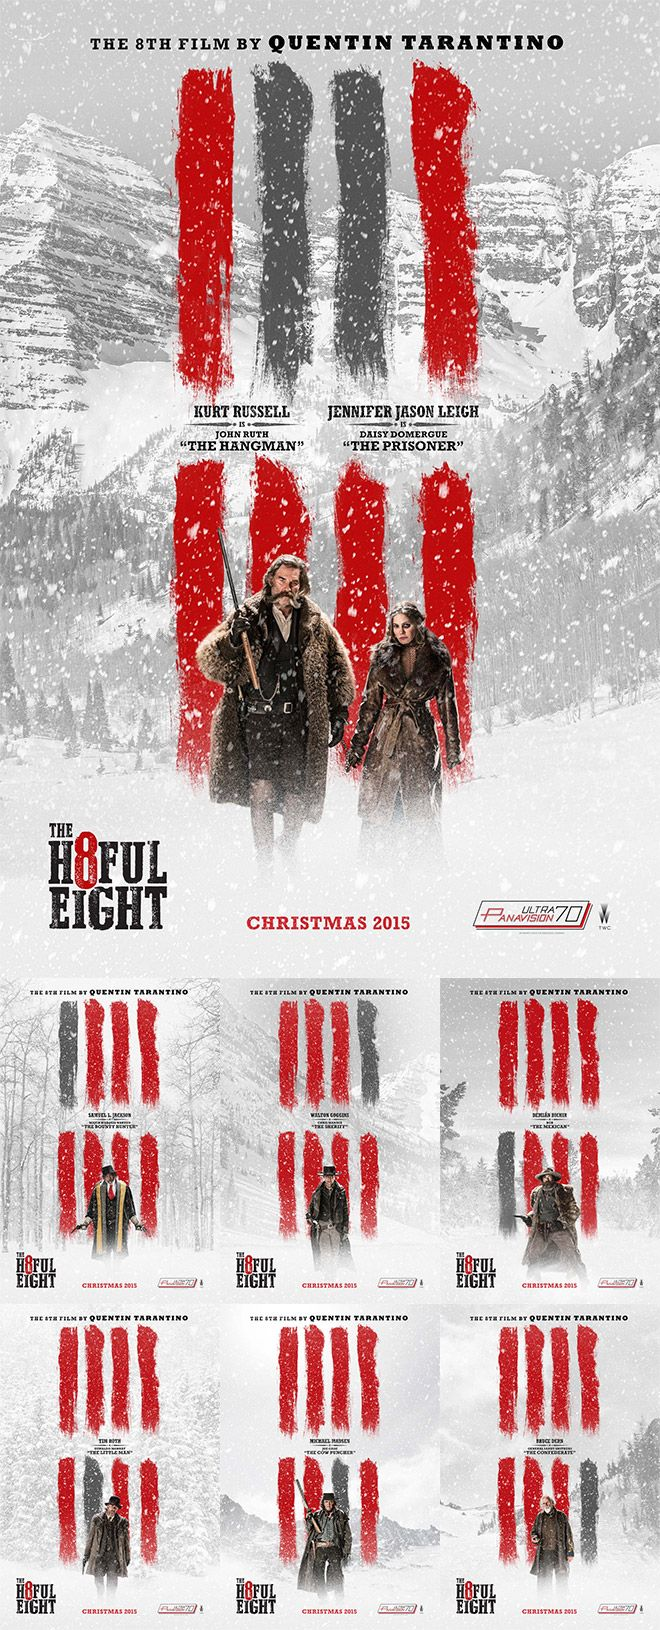 Poster design tutorial - How To Create Your Own Hateful Eight Movie Poster Design